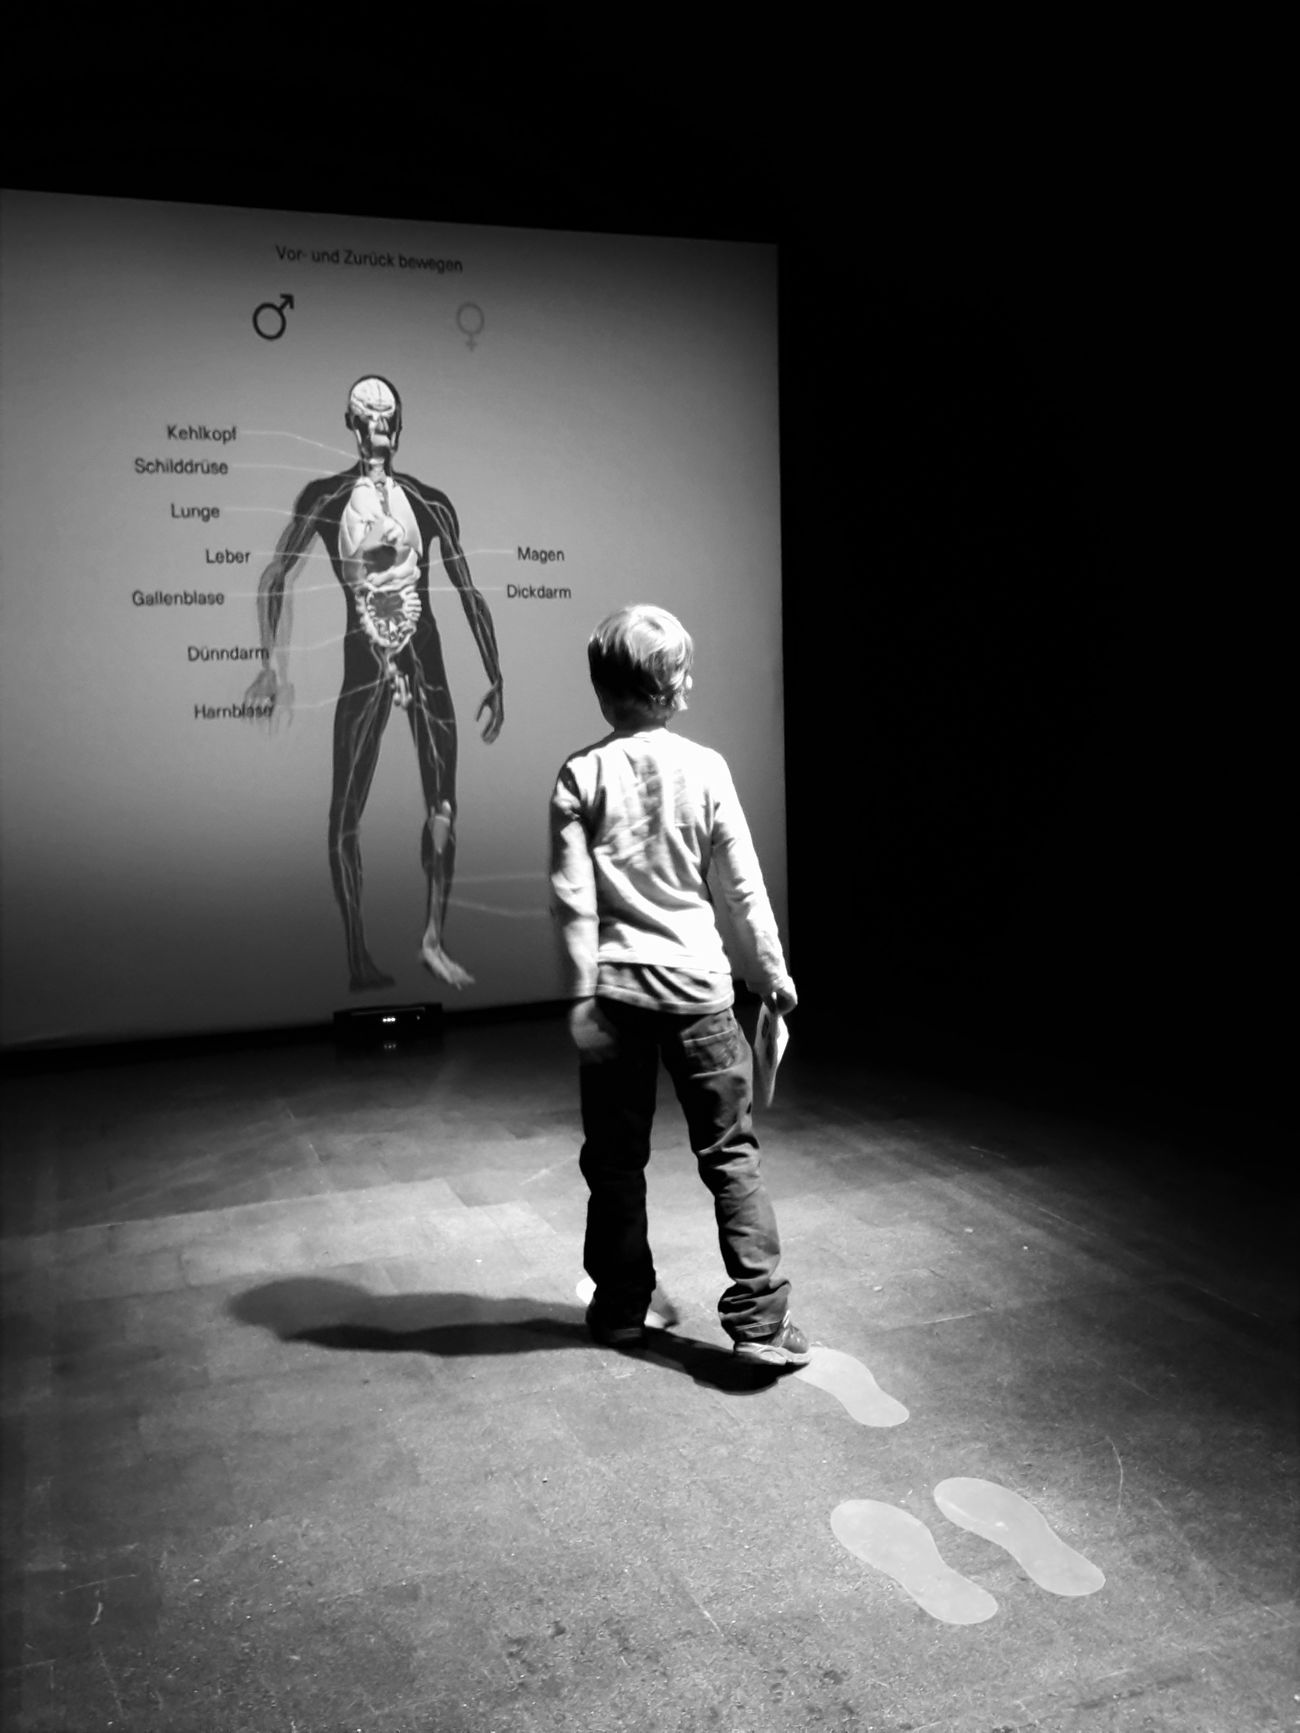 Casual Clothing Childhood Cute Day Full Length Leisure Activity Lifestyles Running Vignette Blackandwhite Playing Enjoyment ScienceMuseum Körperwelten Human Bodyart